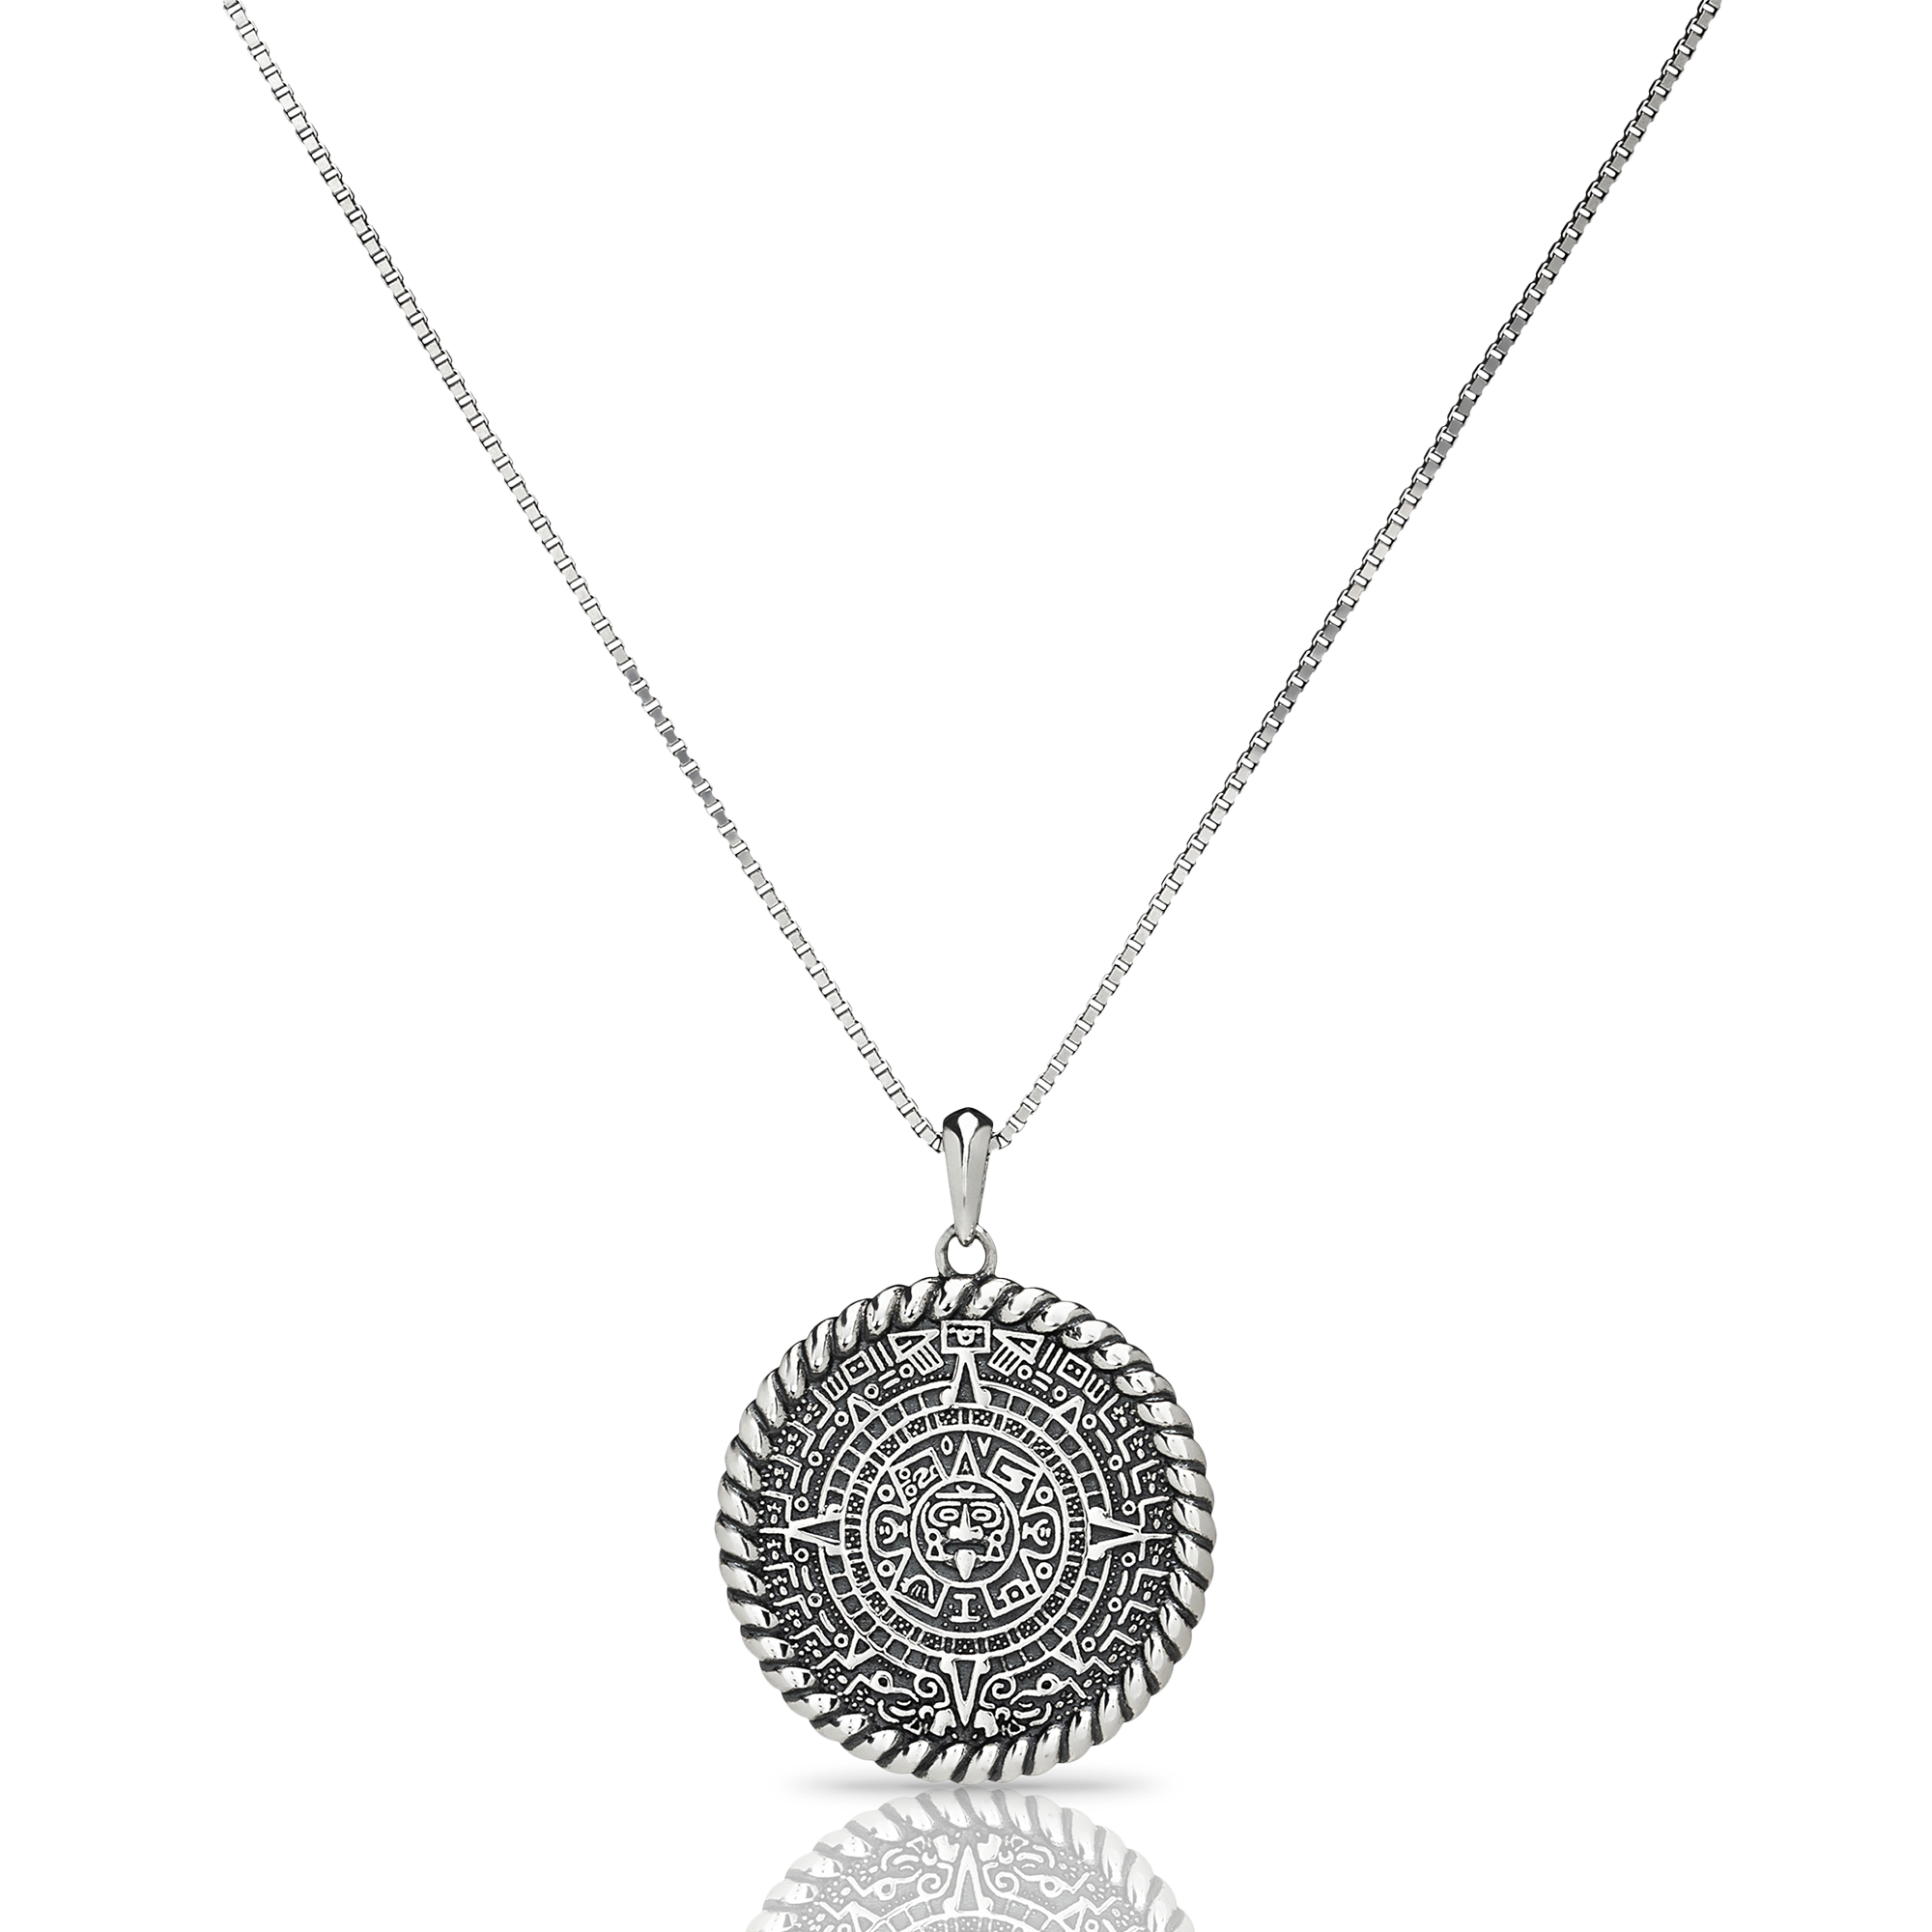 silver Necklace product picture